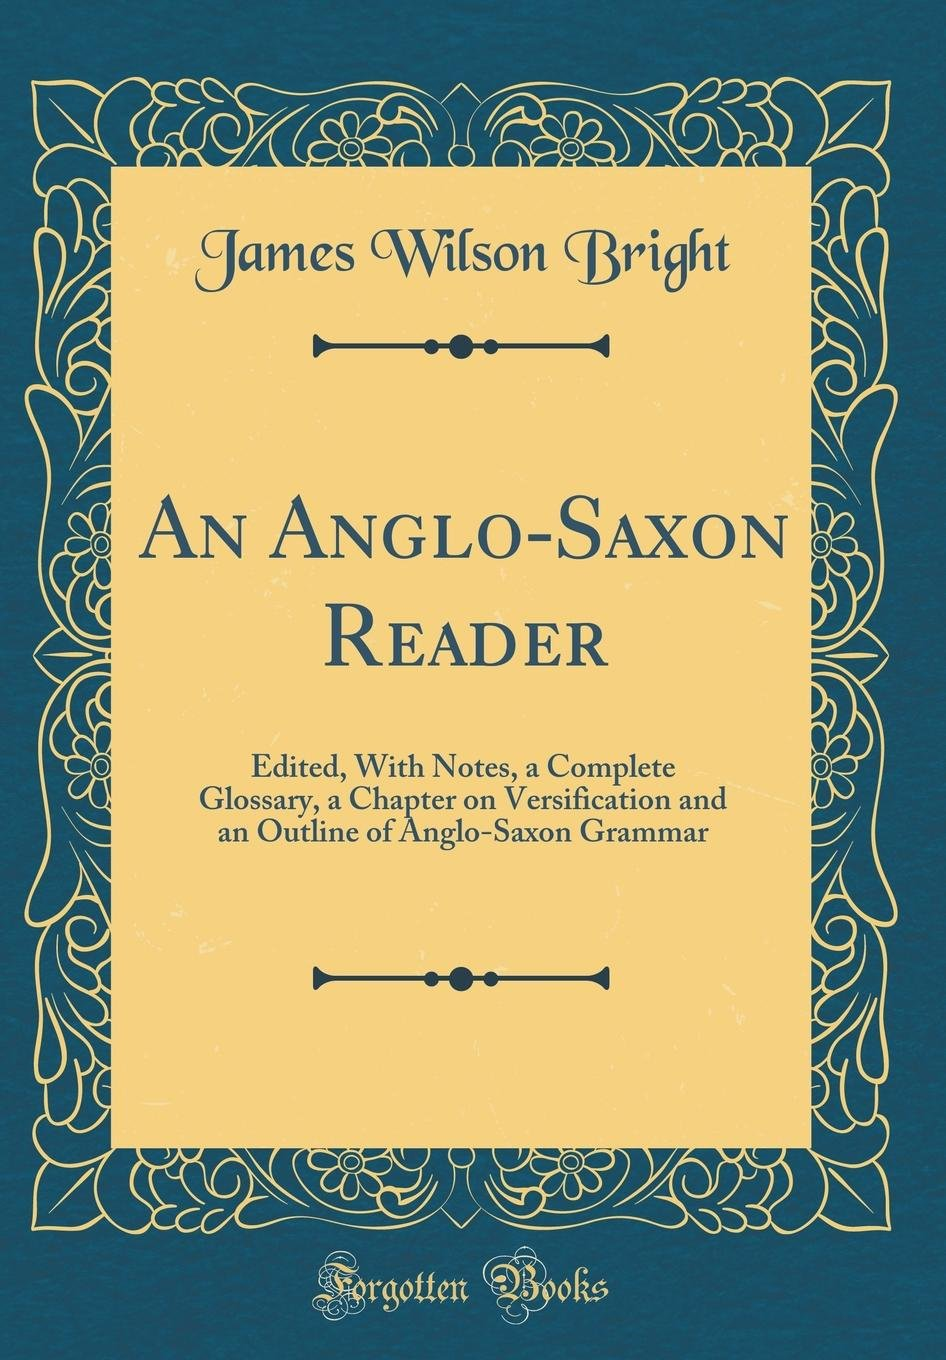 An Anglo-Saxon Reader: Edited, with Notes, a Complete Glossary, a Chapter on Versification and an Outline of Anglo-Saxon Grammar (Classic Reprint) ebook